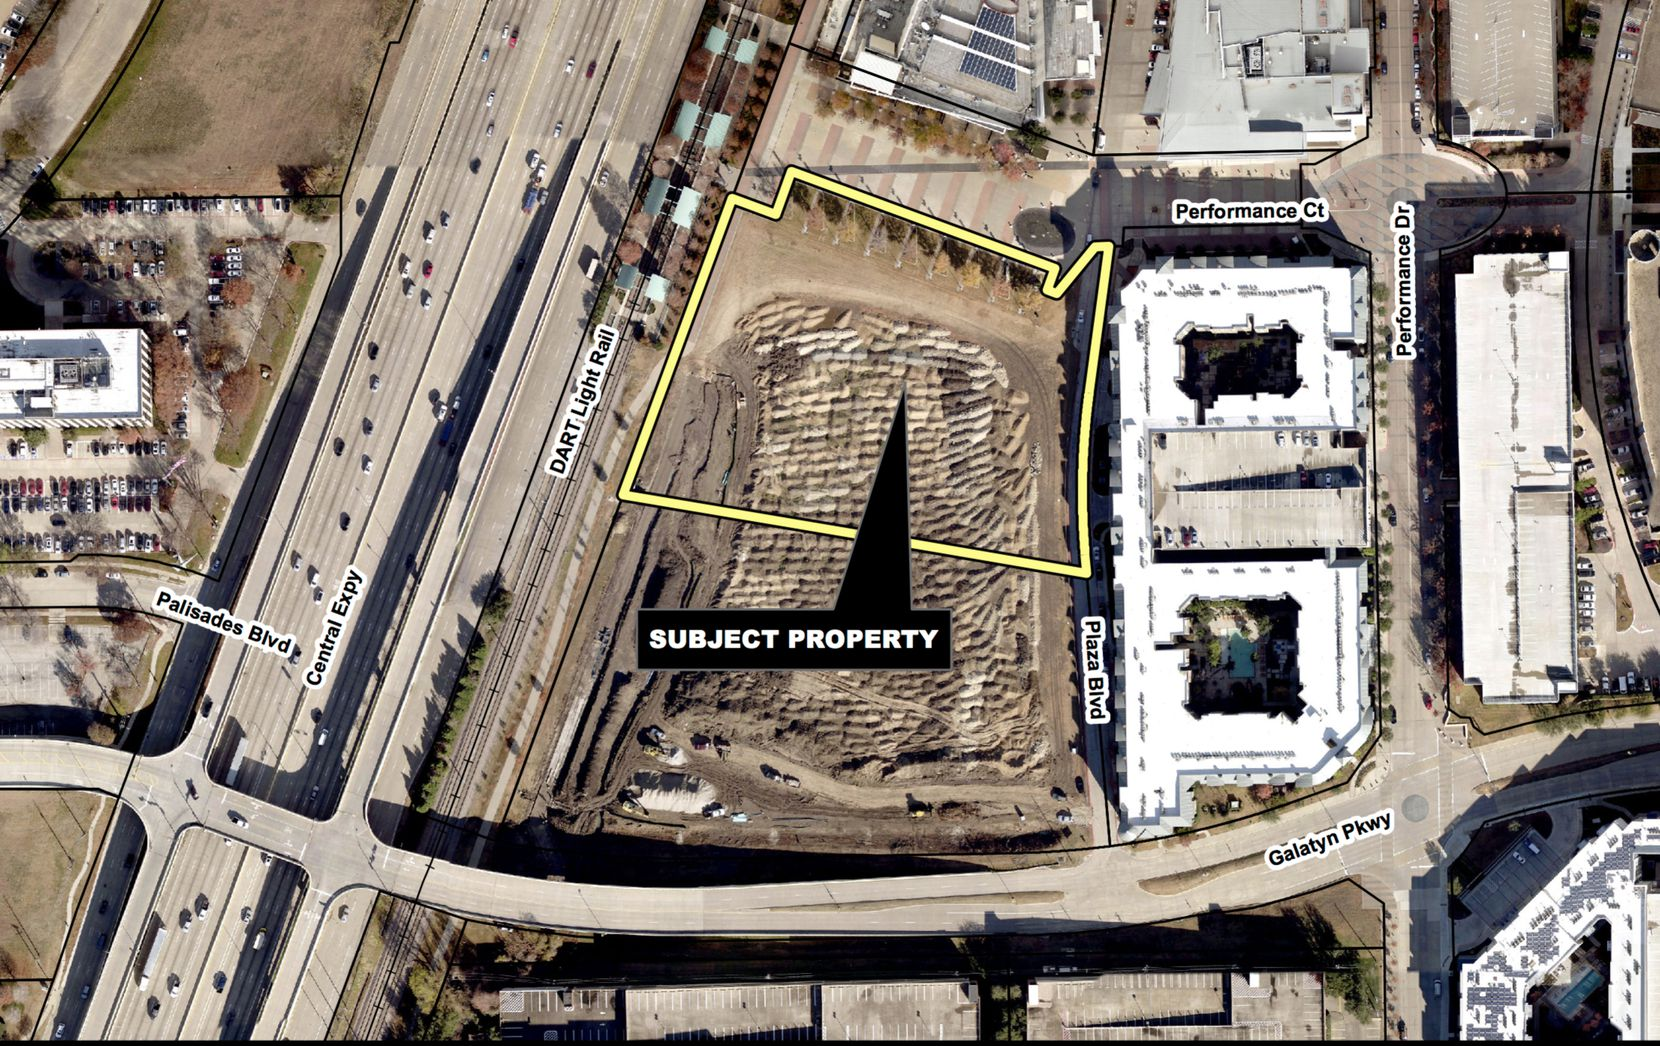 The more than 3.6-acre building site is just east of U.S. 75 and DART's rail station.